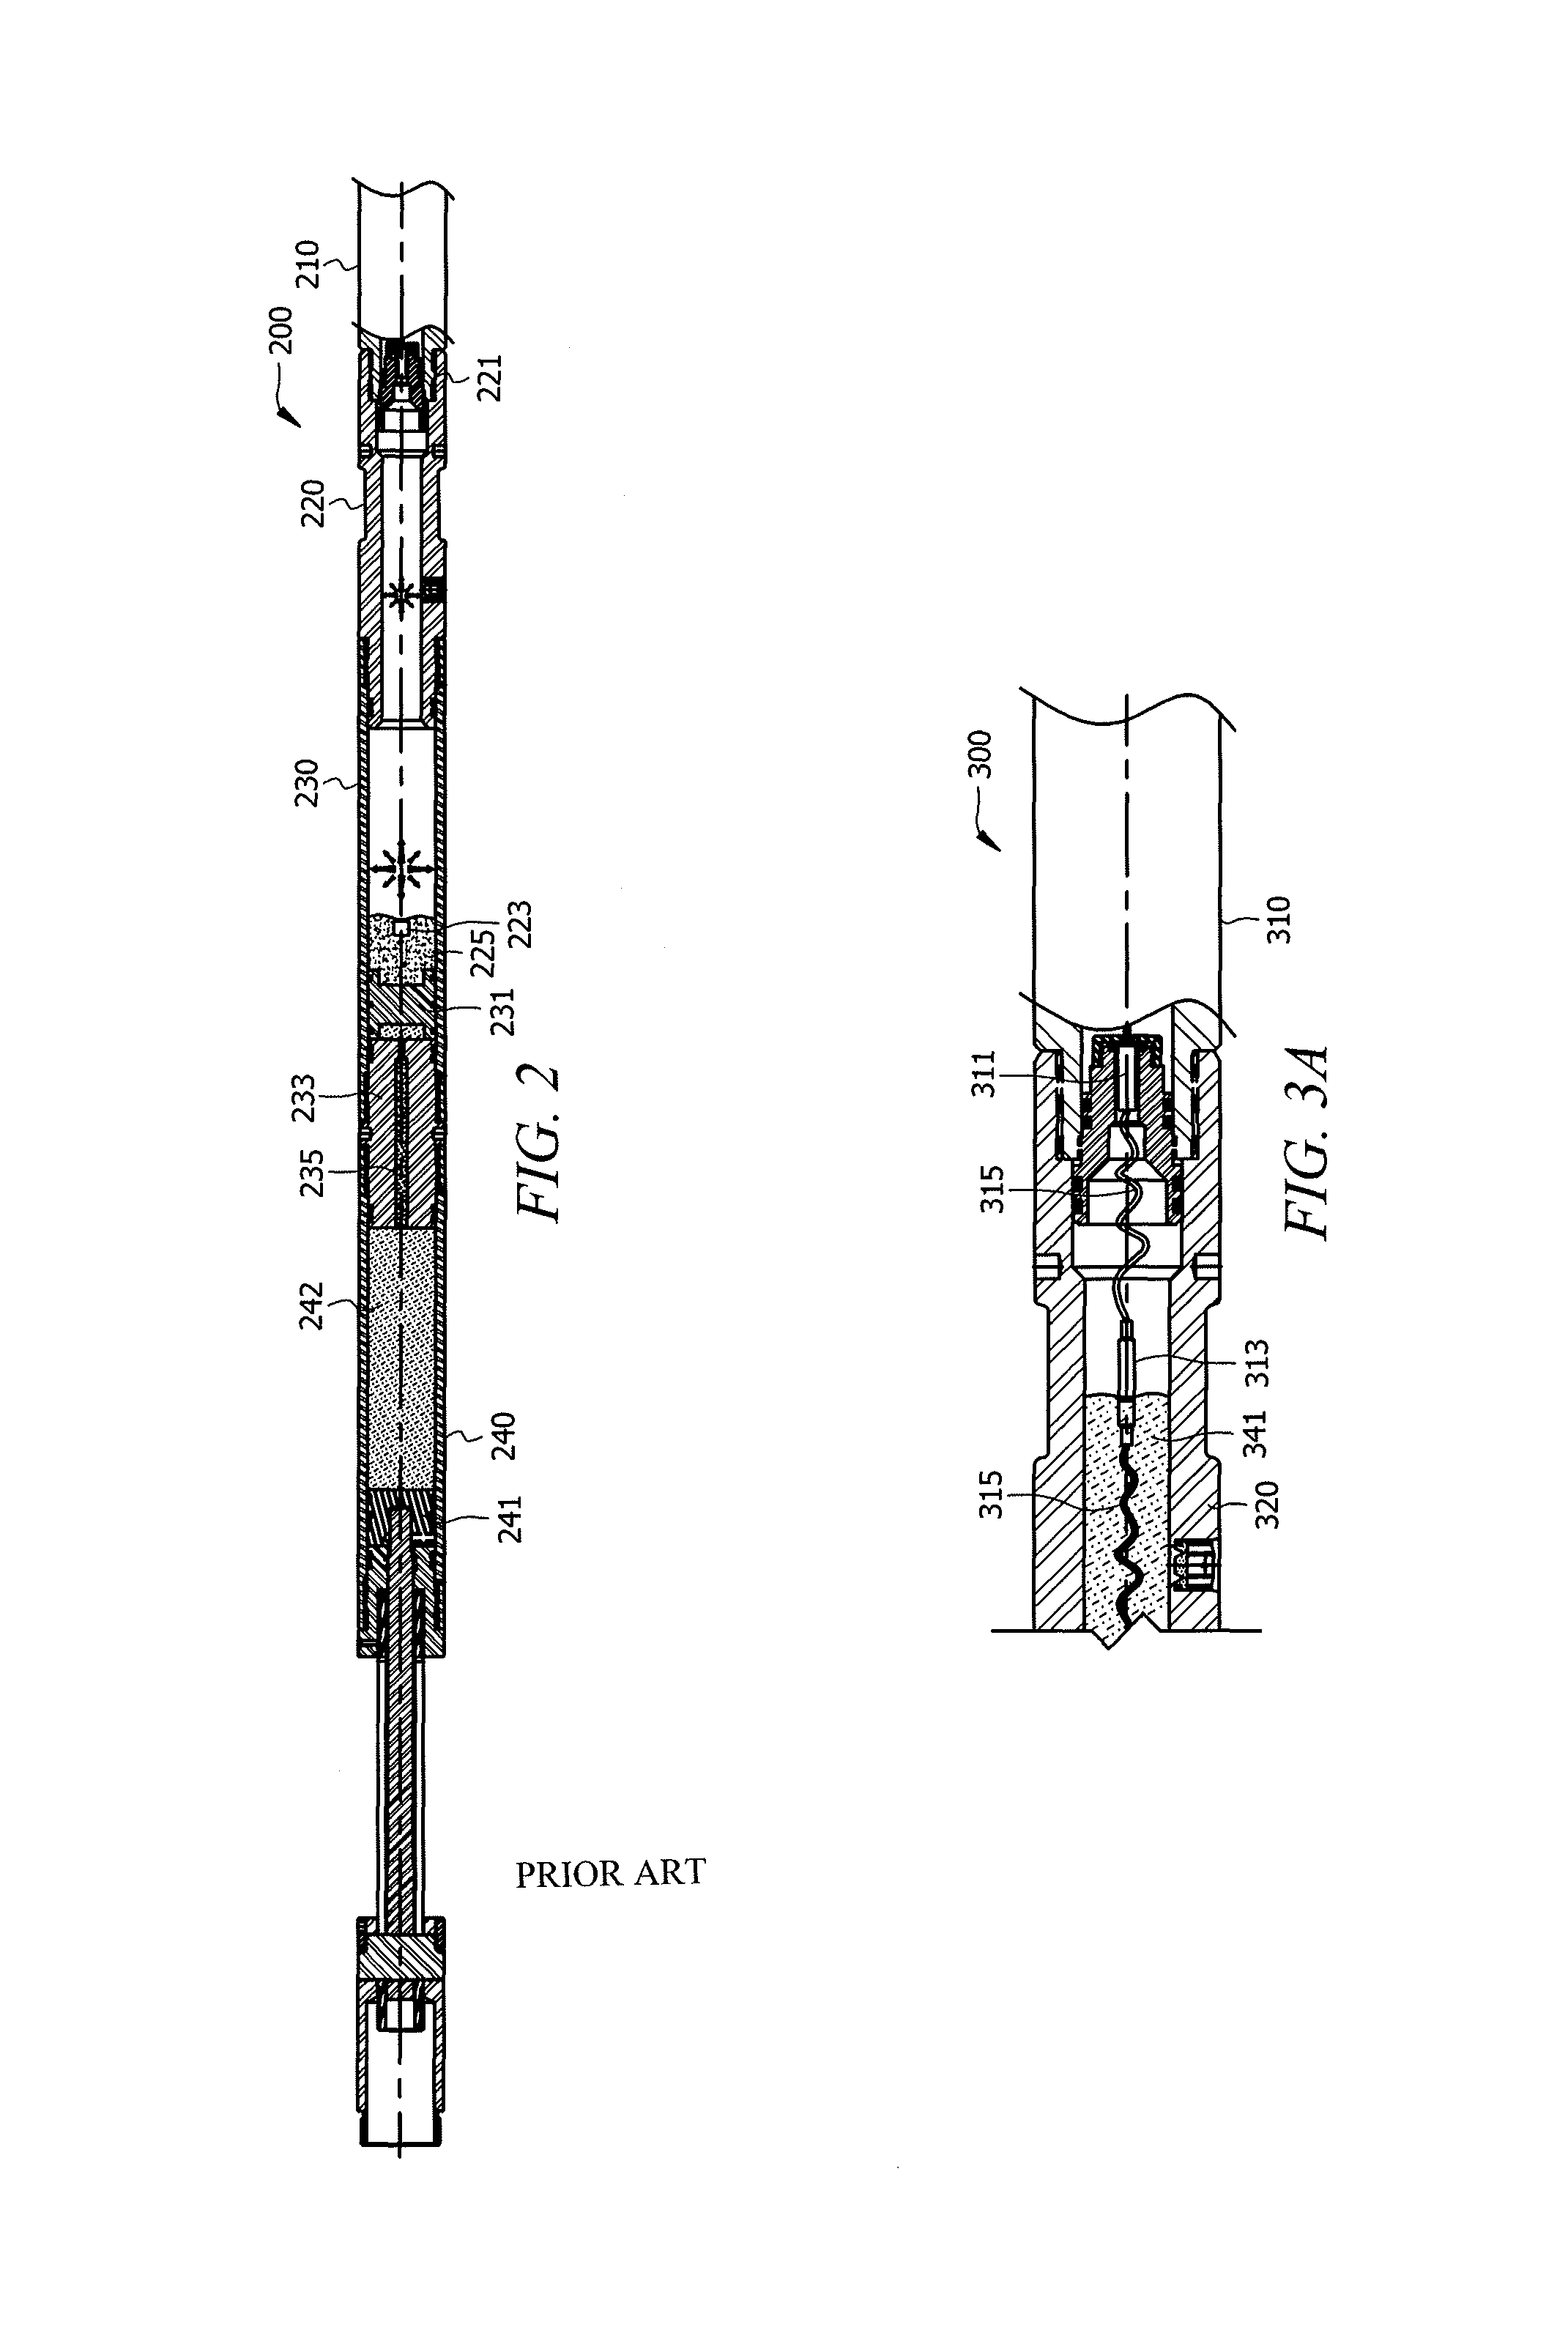 Baker setting tools - Patent Drawing